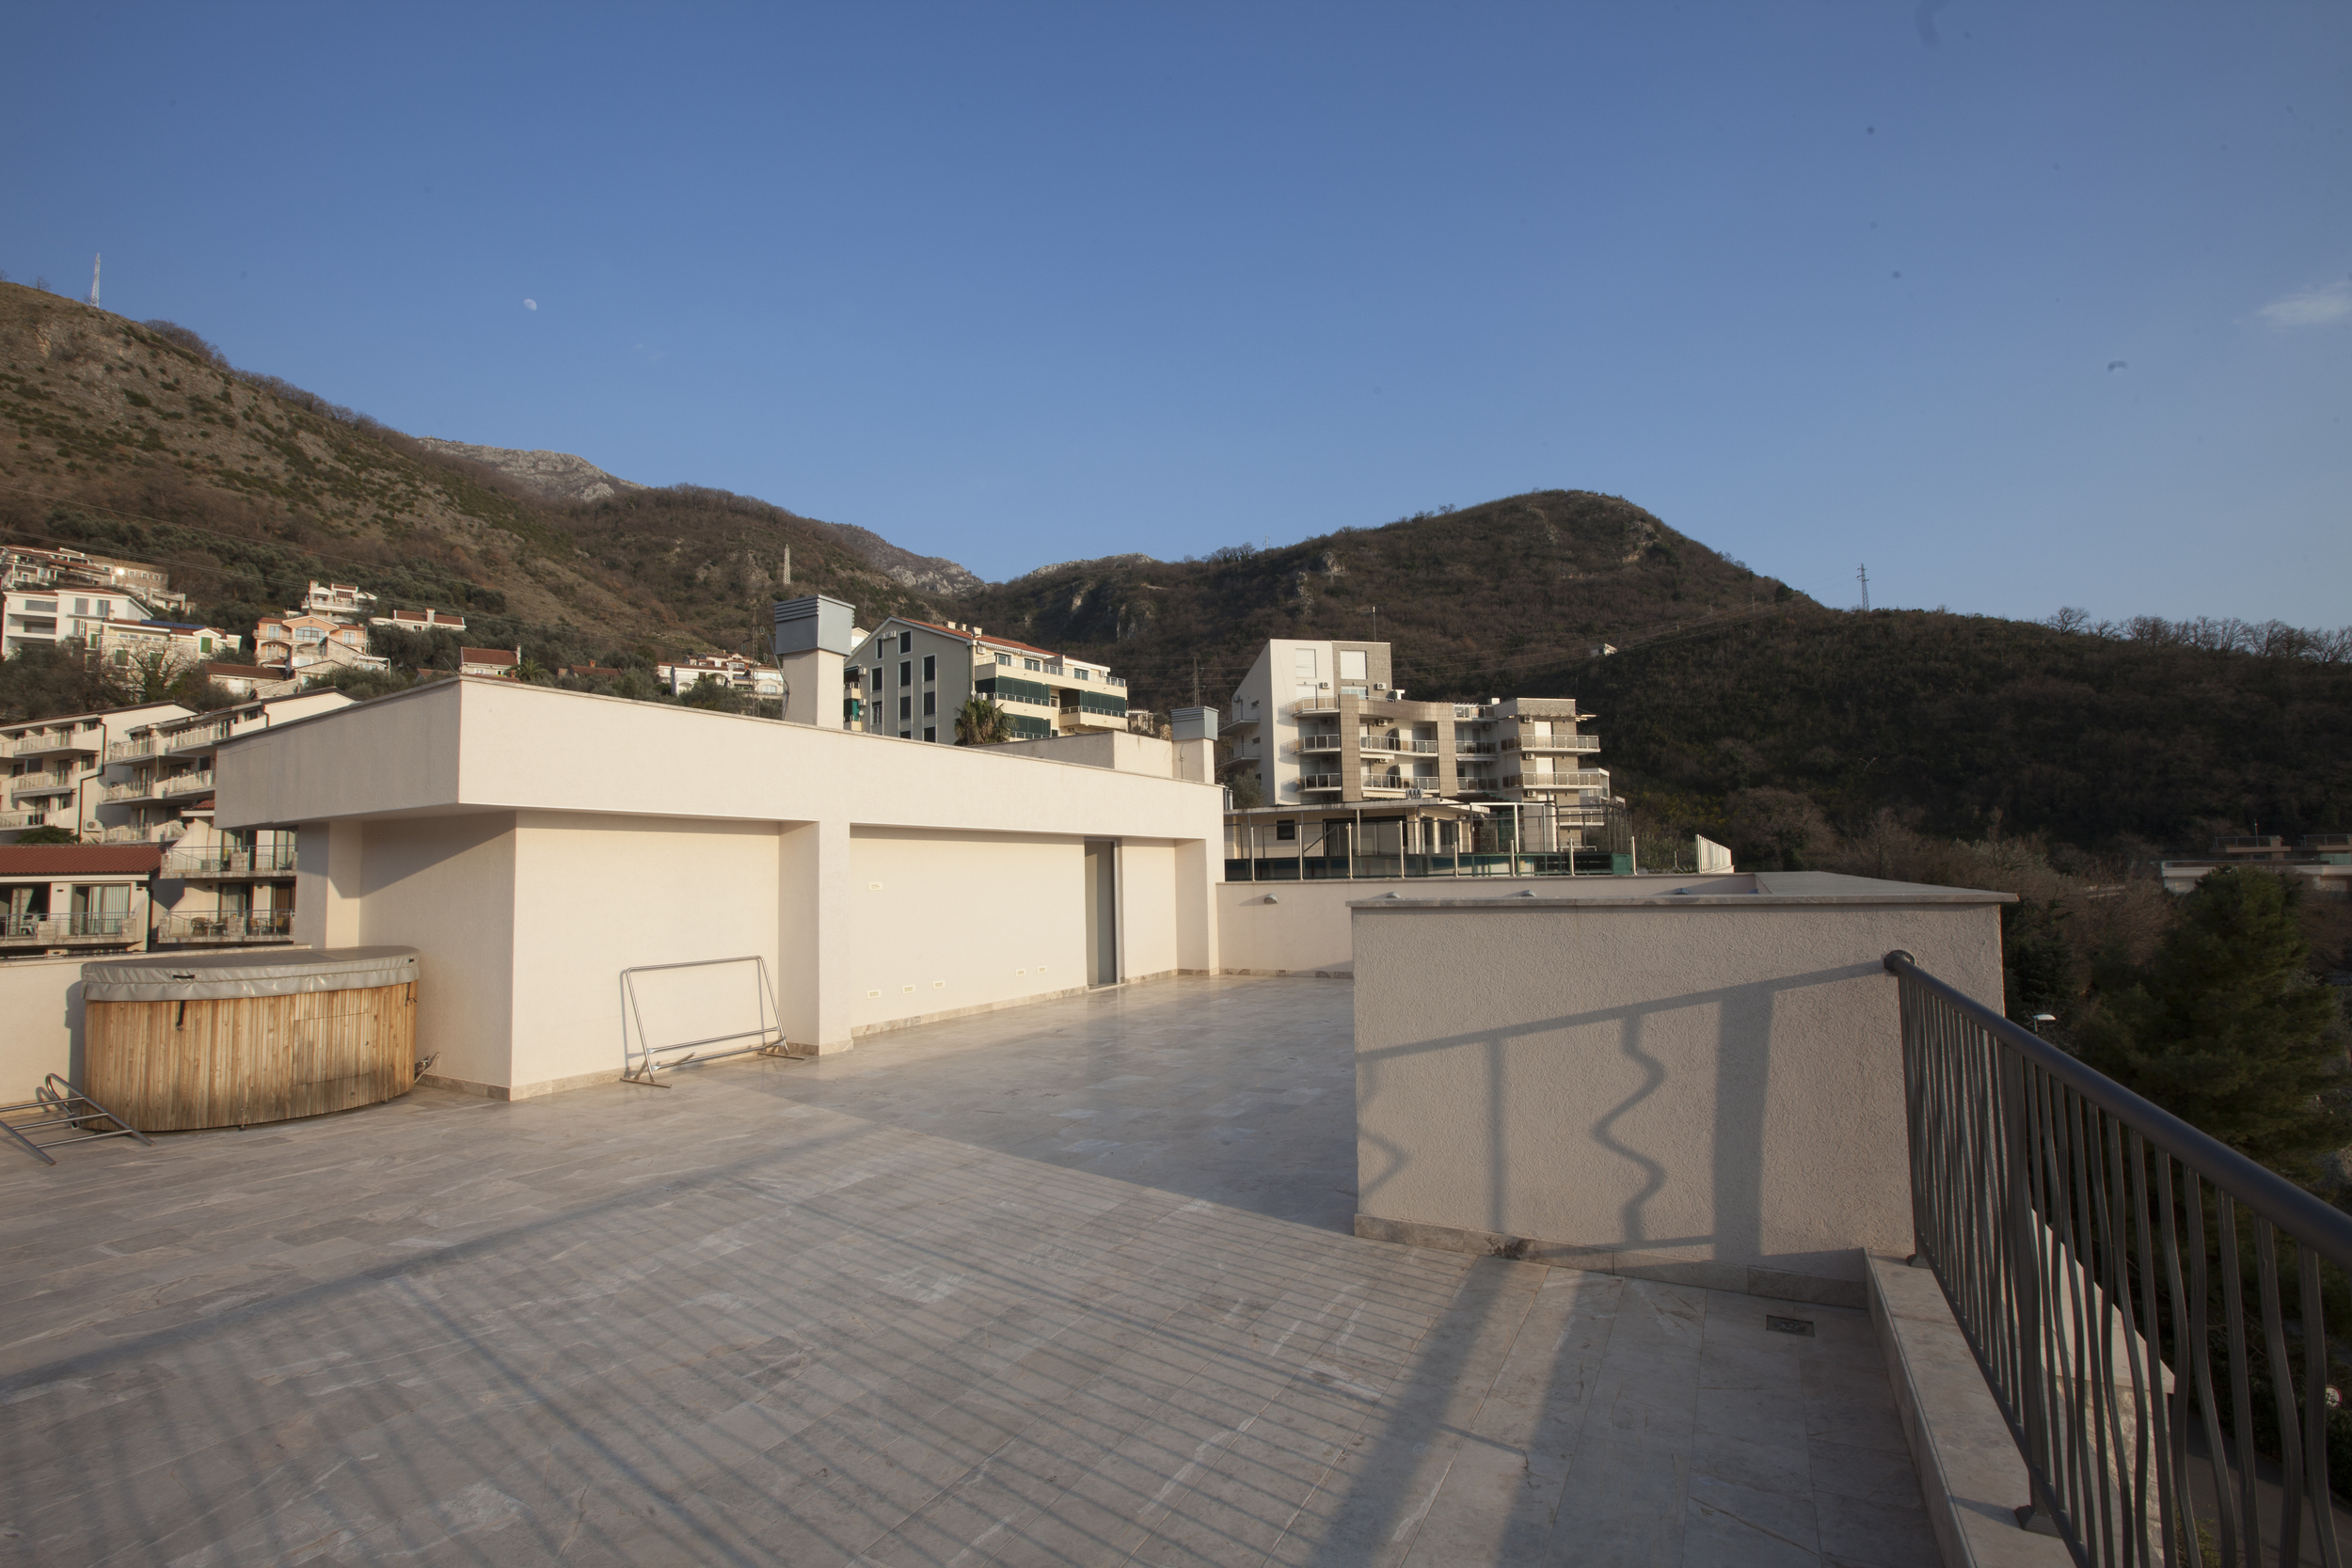 Penthouse for sale in Budva Montenegro